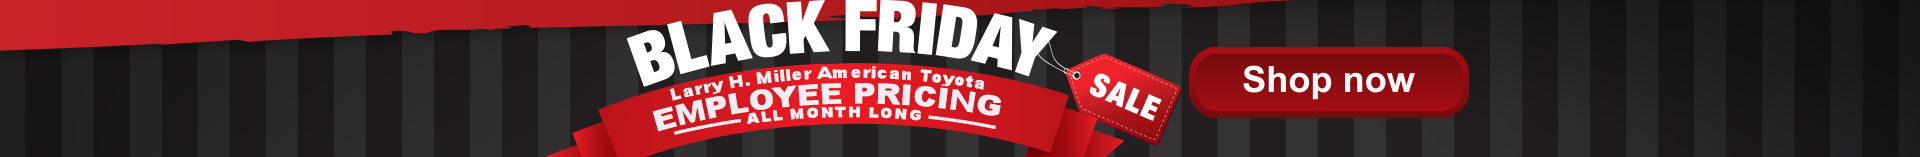 Black Friday Employee Pricing Event